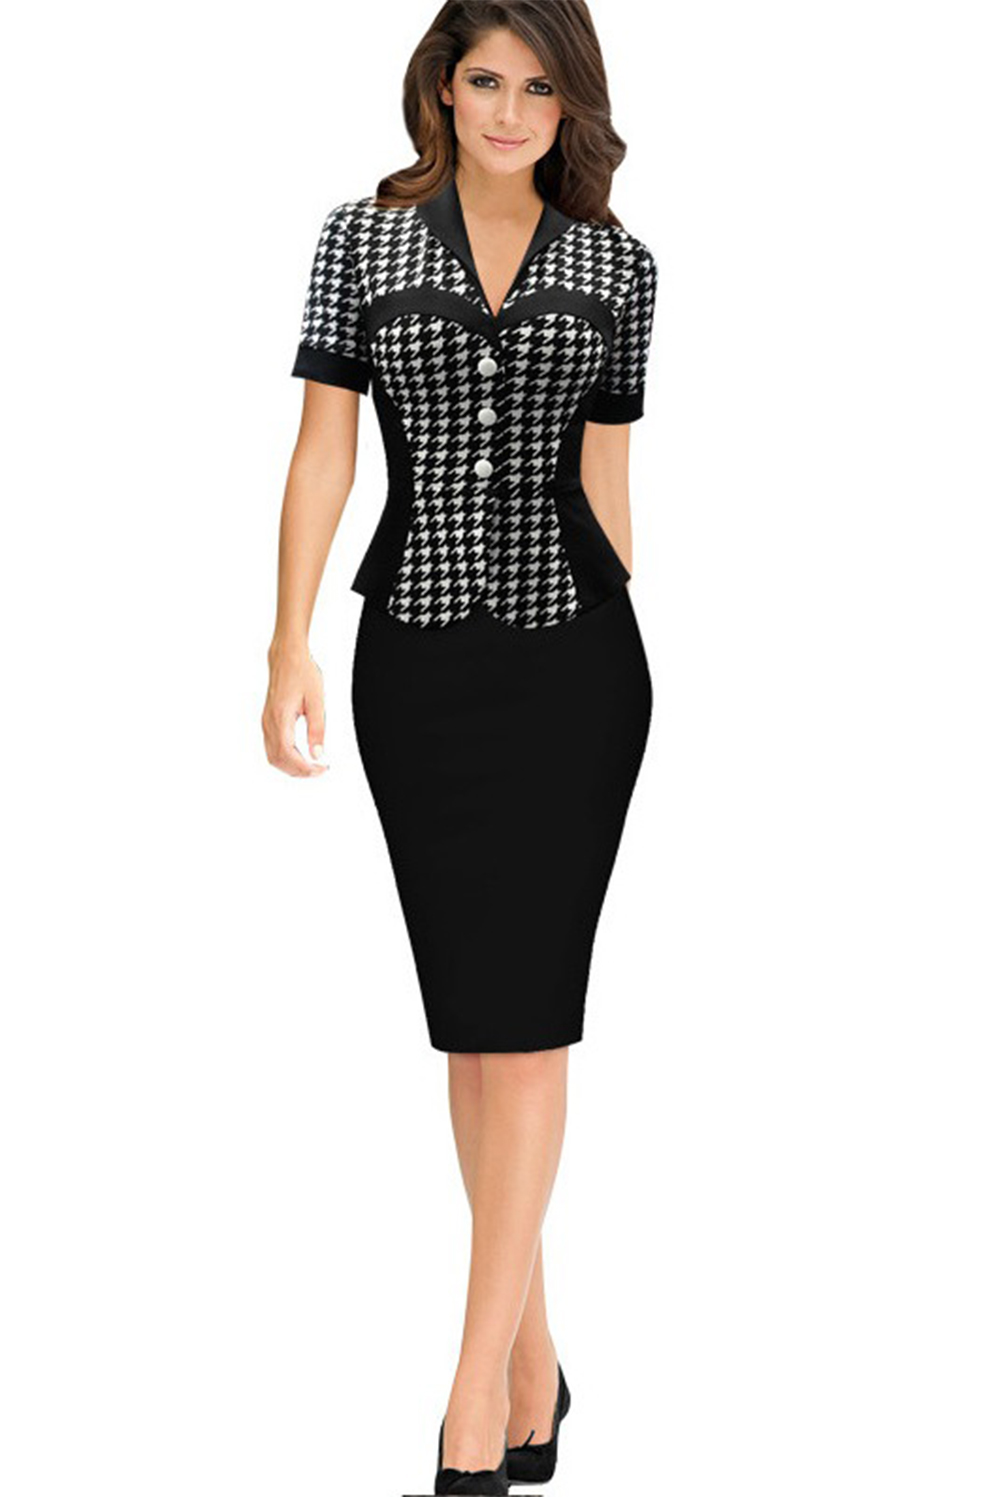 UNOMATCH WOMEN SHORT SLEEVED PLAID PATTERN PEPLUM DRESS ...